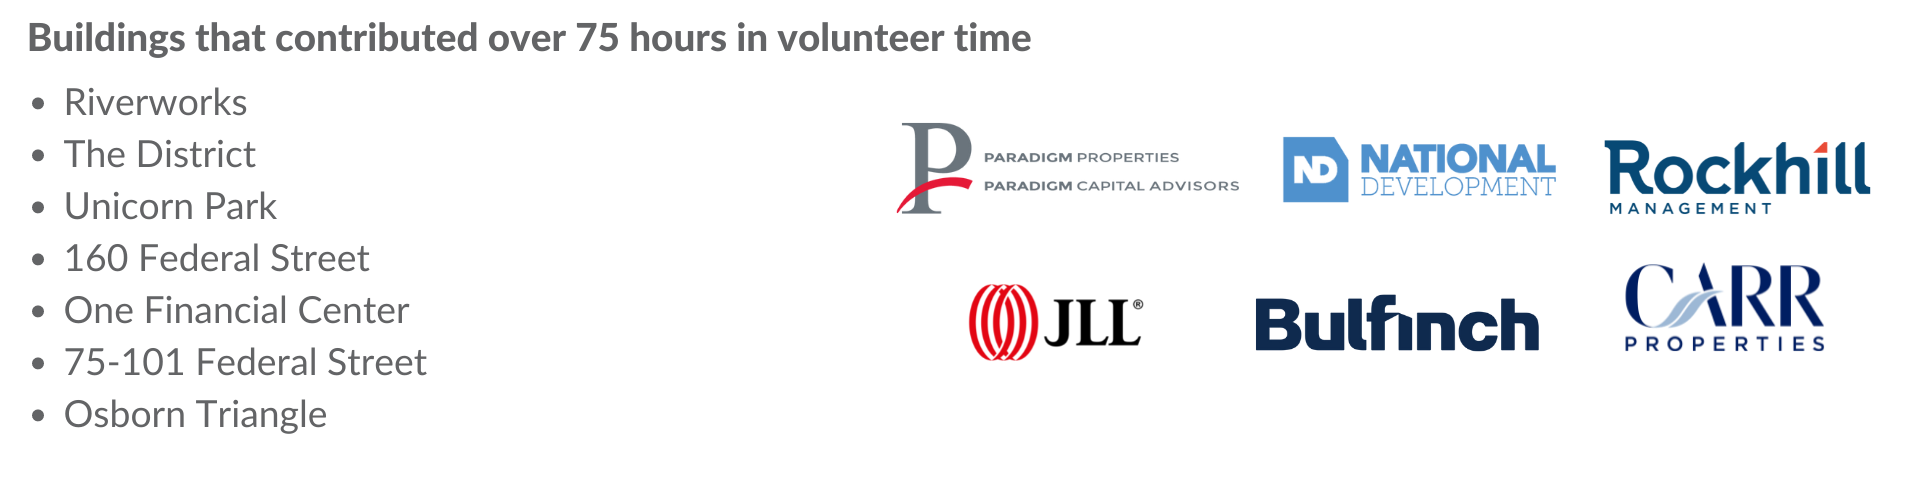 Buildings that contributed over 75 hours in volunteer time: Riverworks, The District, Unicorn Park, 160 Federal Street, One Financial Center, 75-101 Federal Street, Osborn Triangle